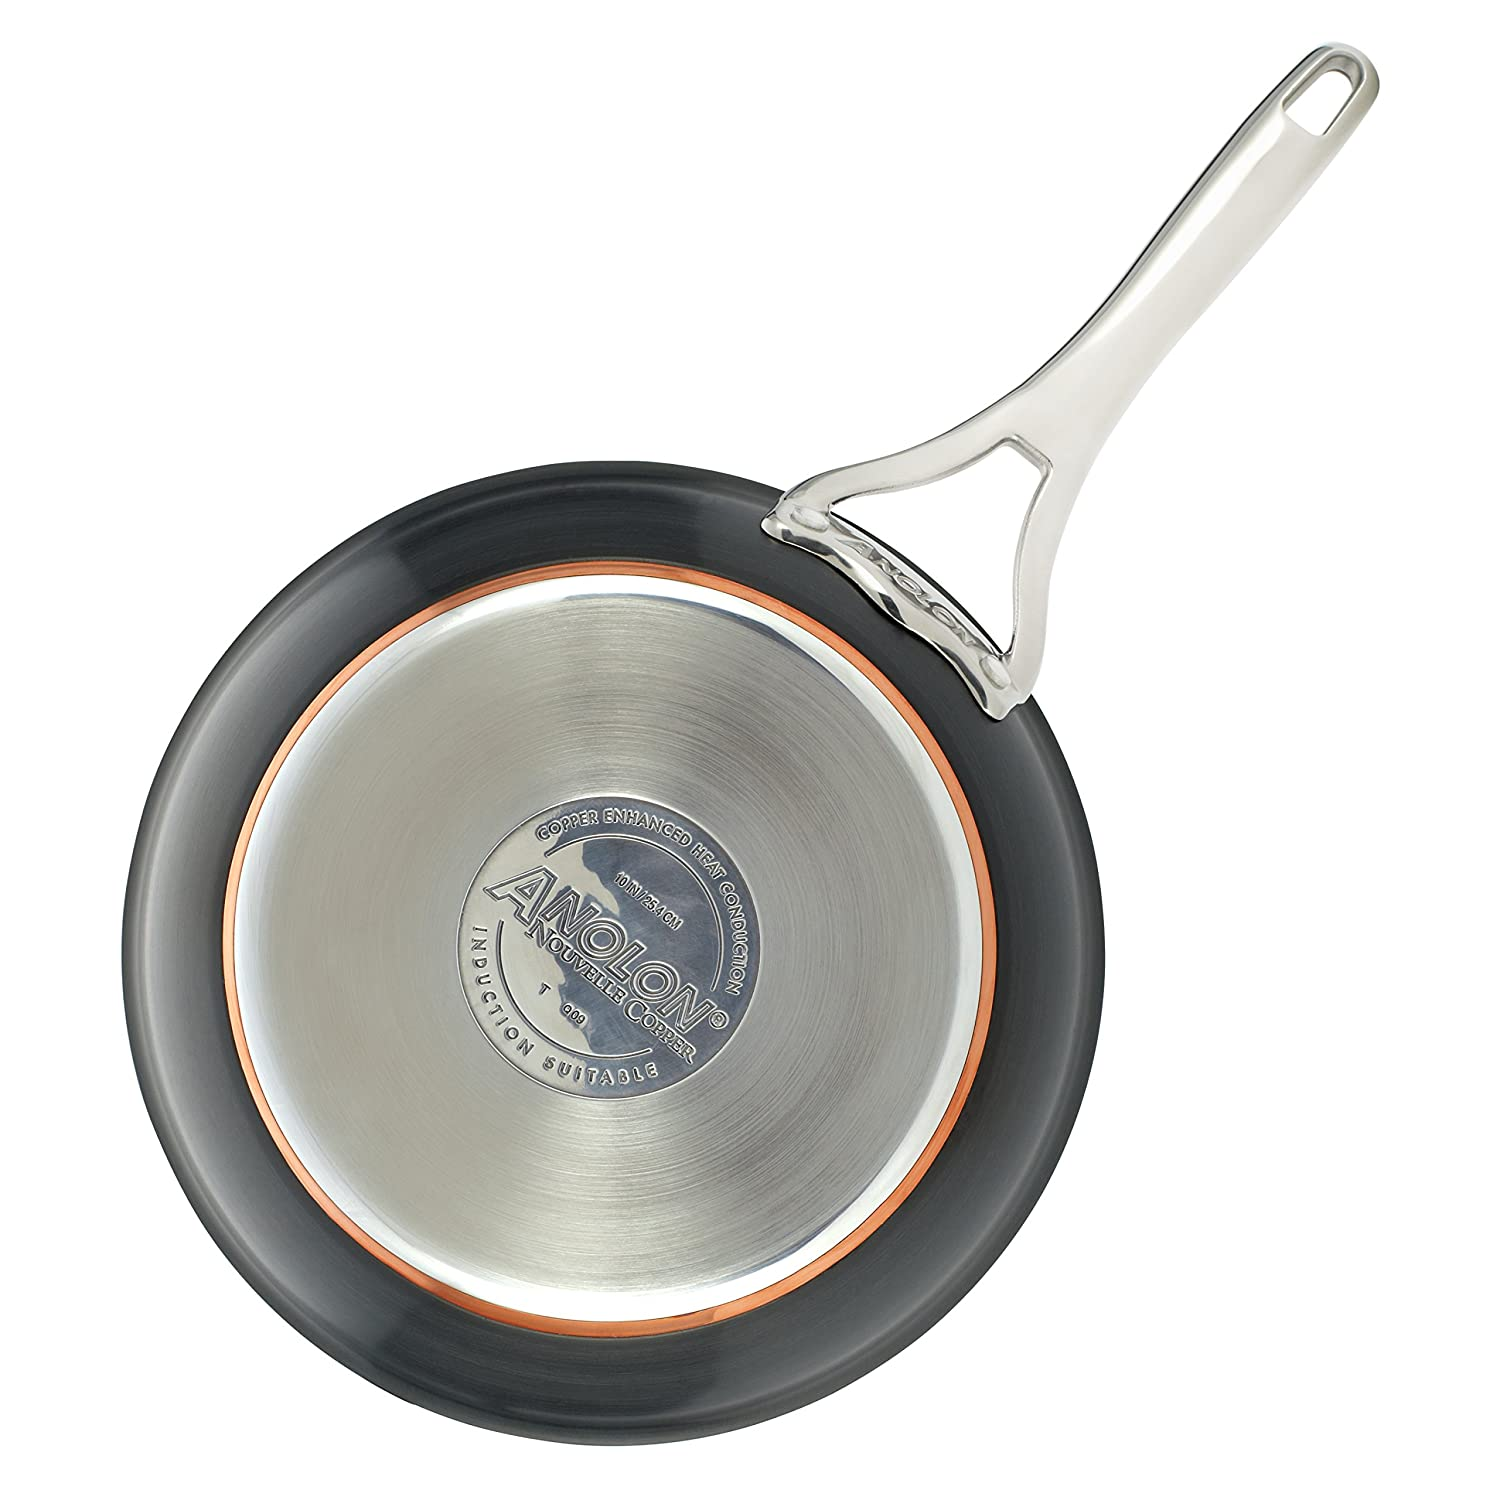 Dark Gray Anolon Nouvelle Copper Hard-Anodized Nonstick Twin Pack French Skillets 8-Inch and 10-Inch